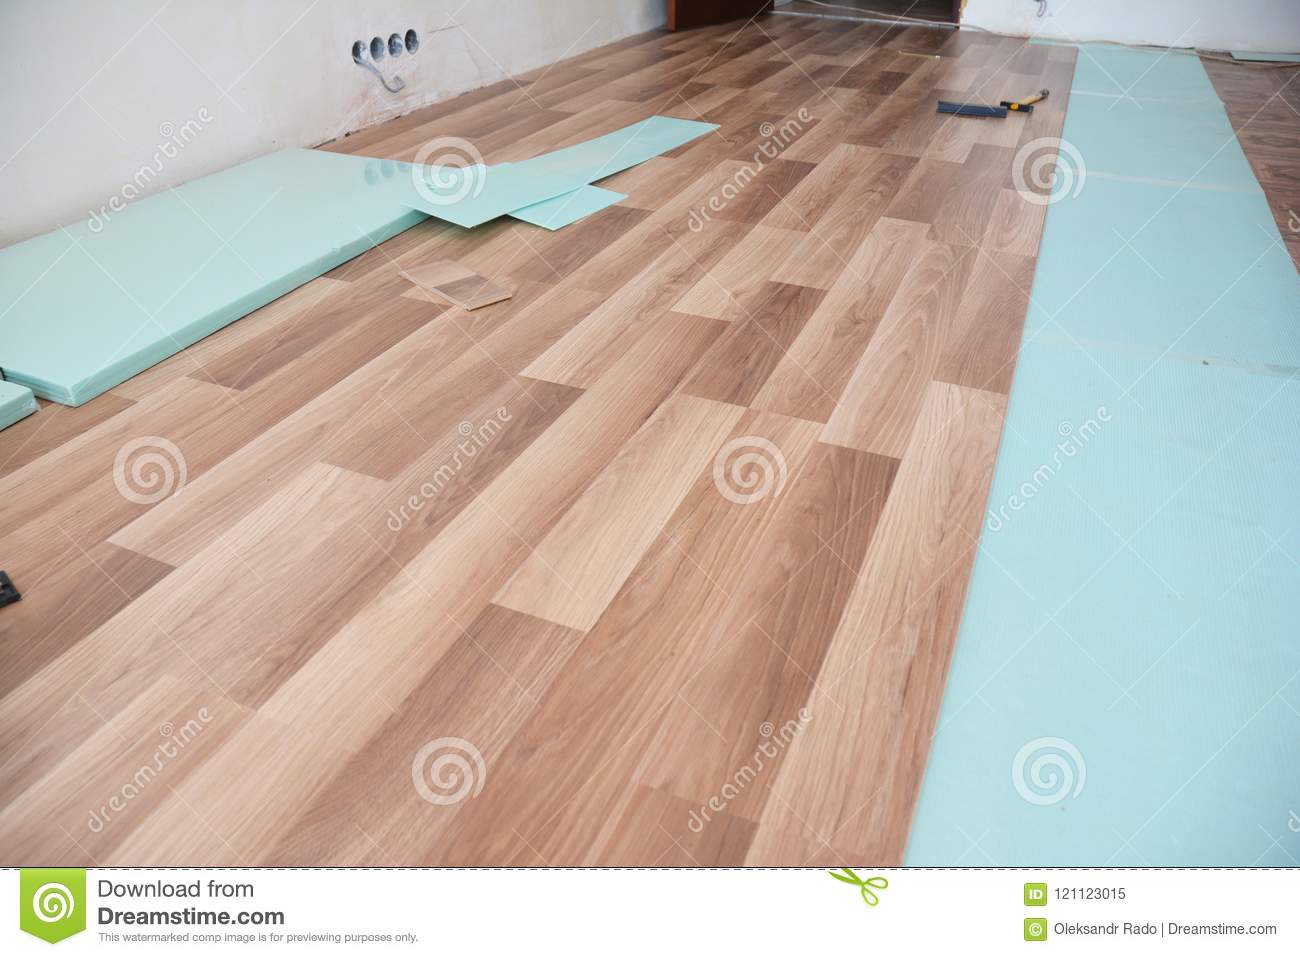 Installing Wooden Laminate Flooring With Insulation And